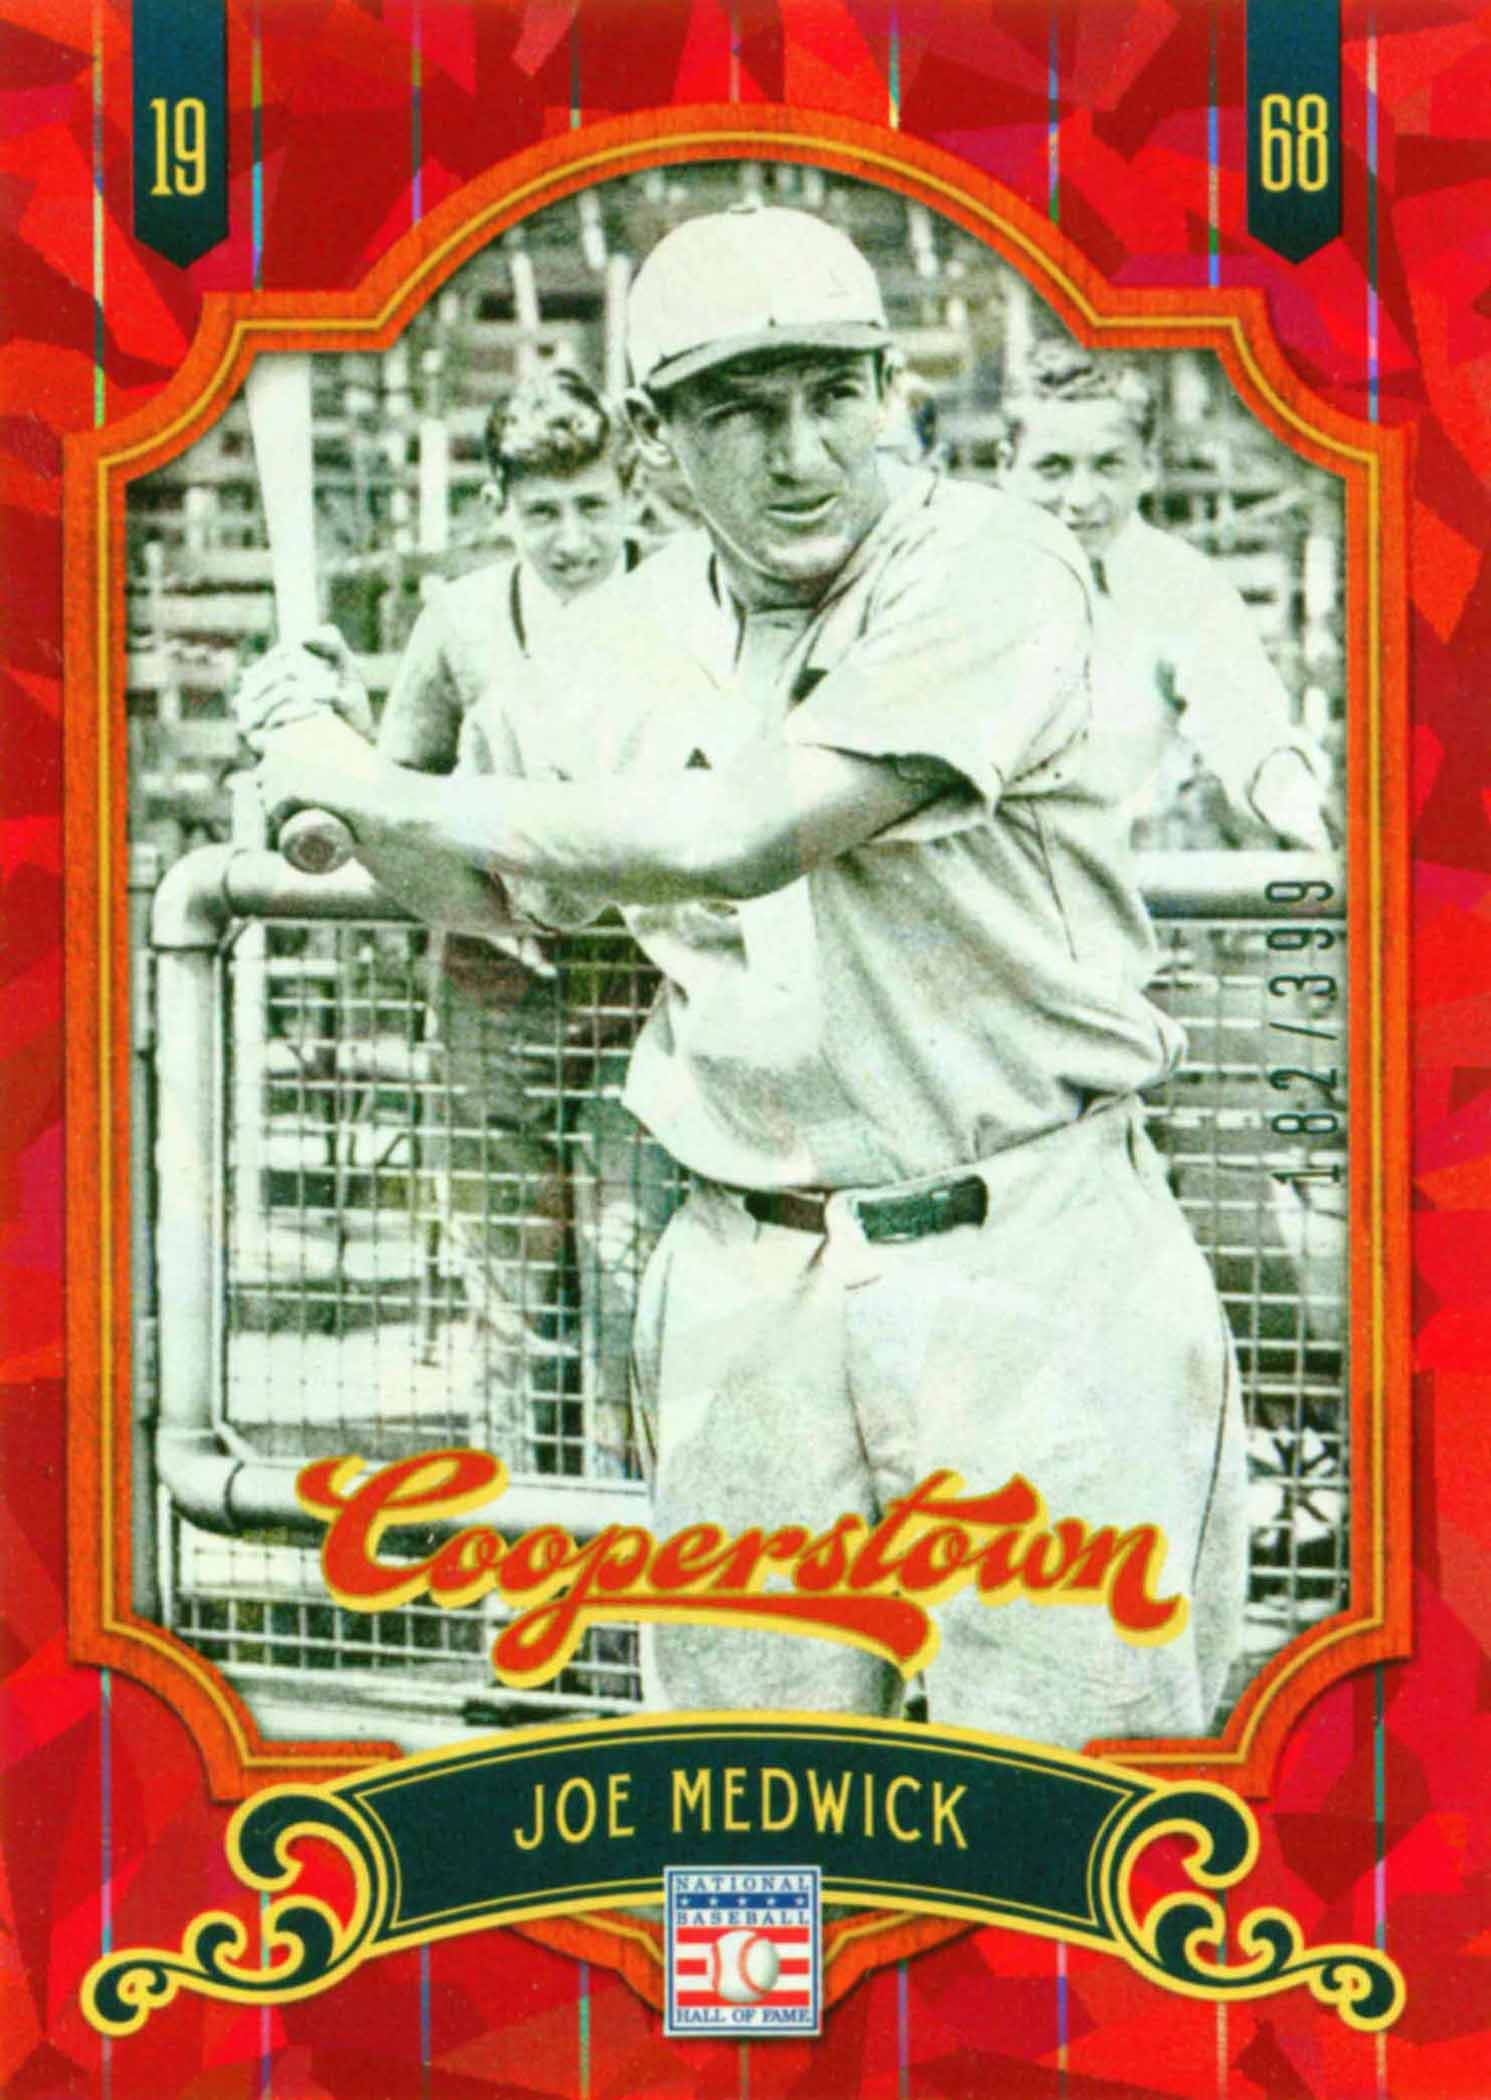 2012 Panini Cooperstown Crystal Collection Red